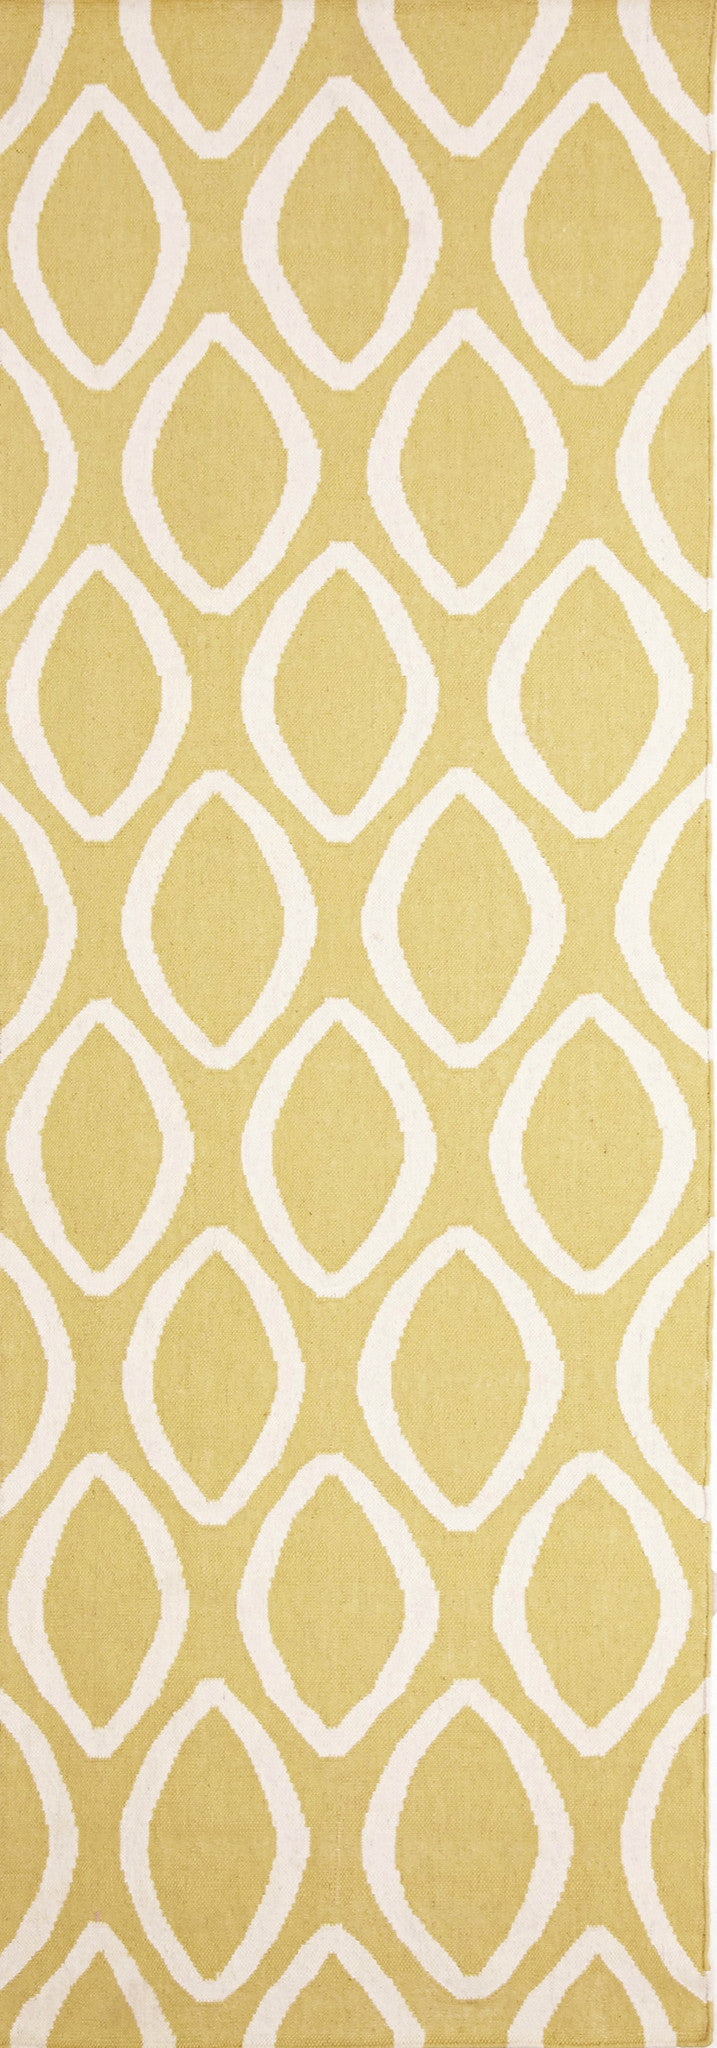 Flat Weave Oval Print Rug Yellow - MaddieBelle